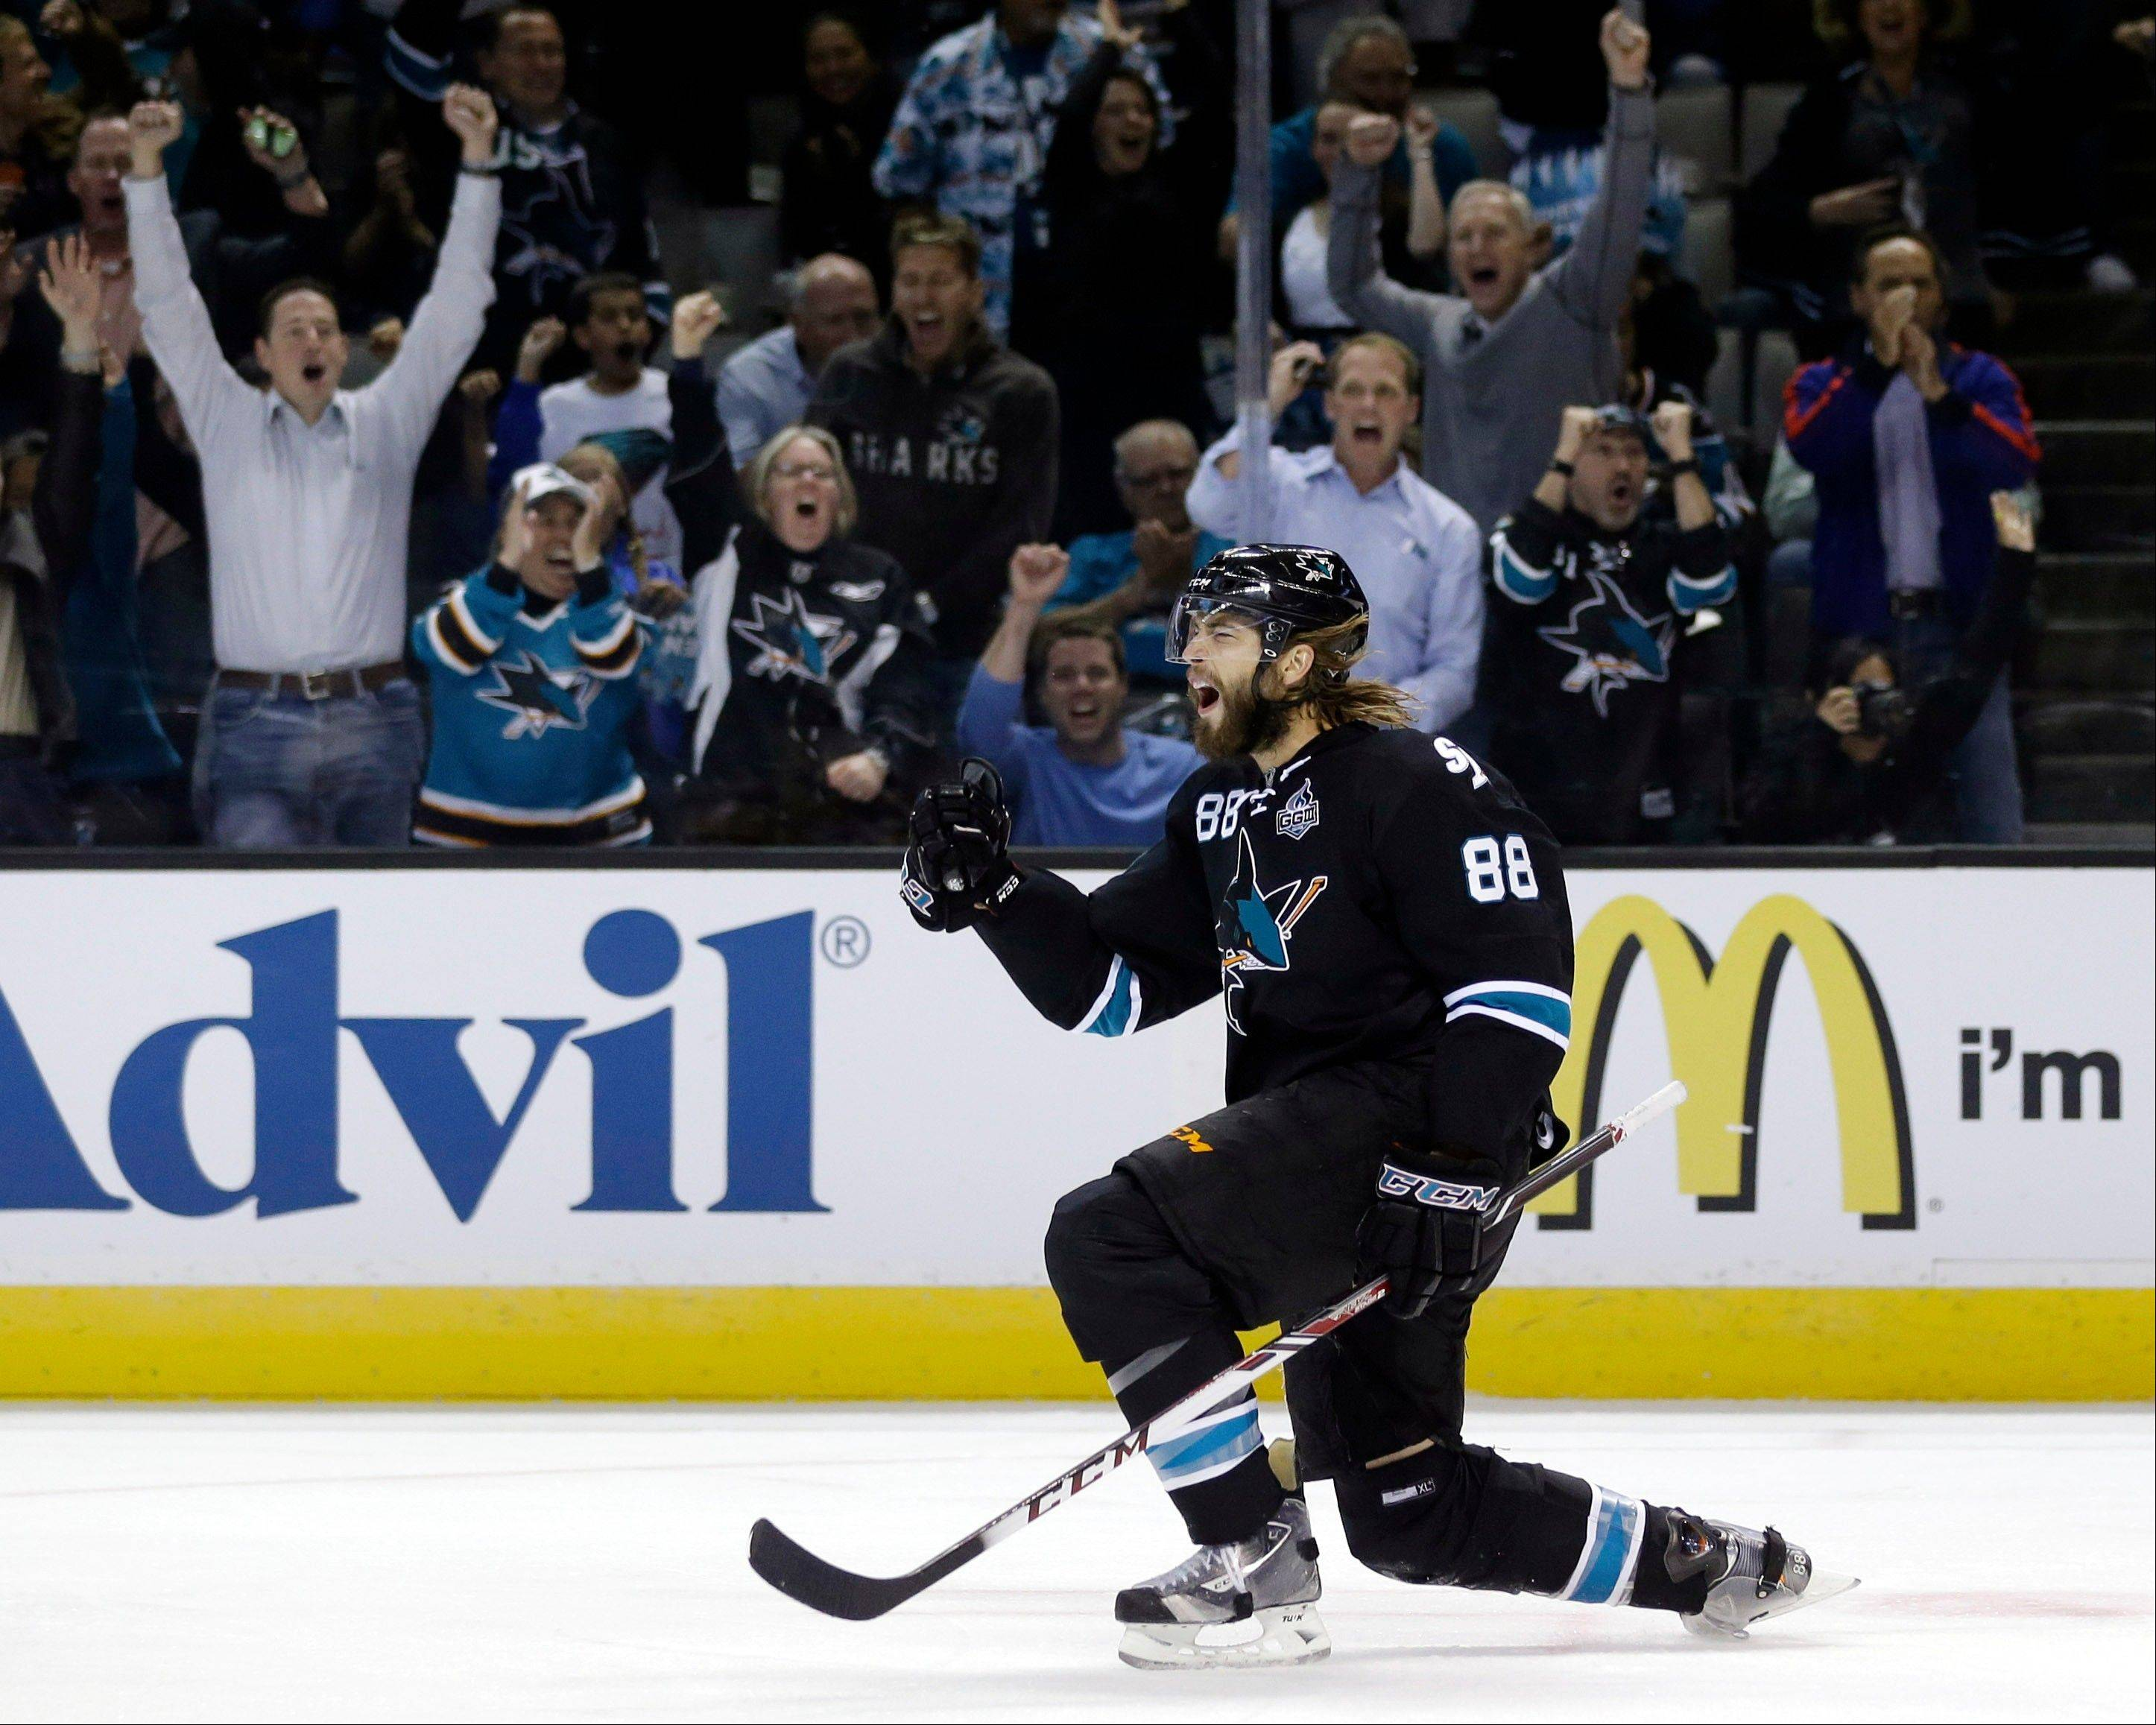 San Jose Sharks' Brent Burns (88) celebrates his goal against the Los Angeles Kings during the first period in Game 4 of their second-round NHL hockey Stanley Cup playoff series in San Jose, Calif., Tuesday, May 21, 2013.